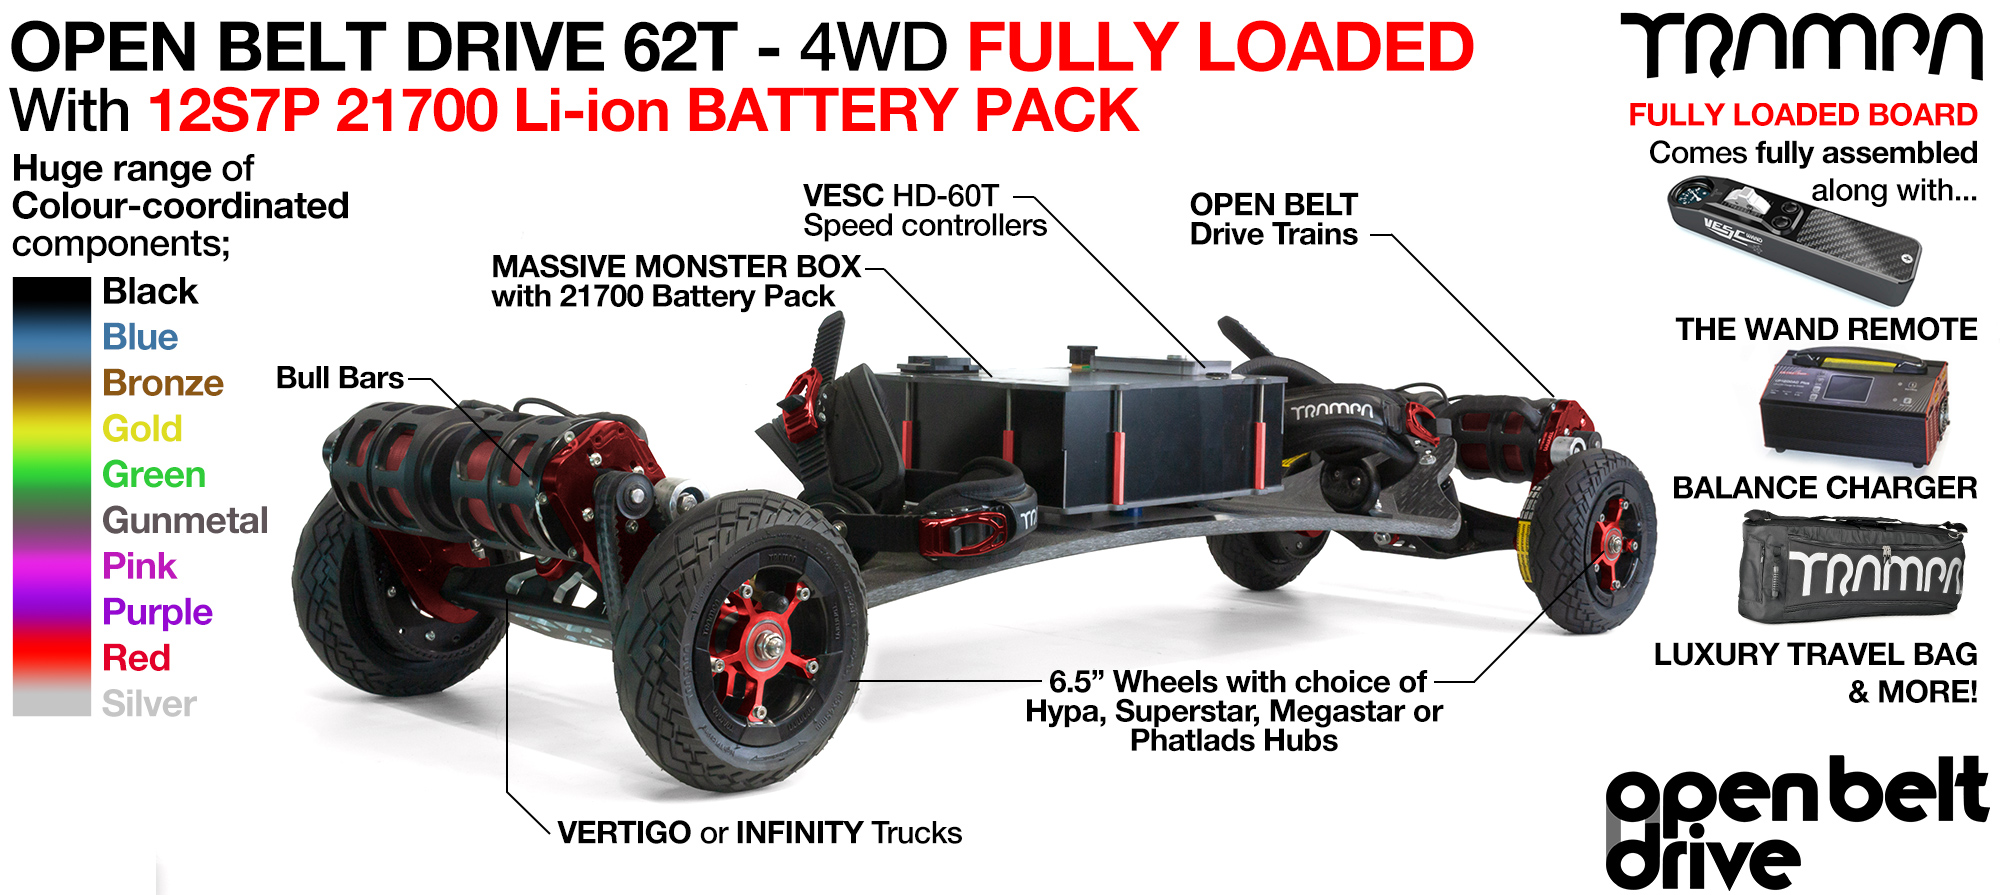 4WD 66T Open Belt Drive TRAMPA Electric Mountainboard with 6 Inch URBAN TREADs Wheels & 62 Tooth Pulleys - LOADED